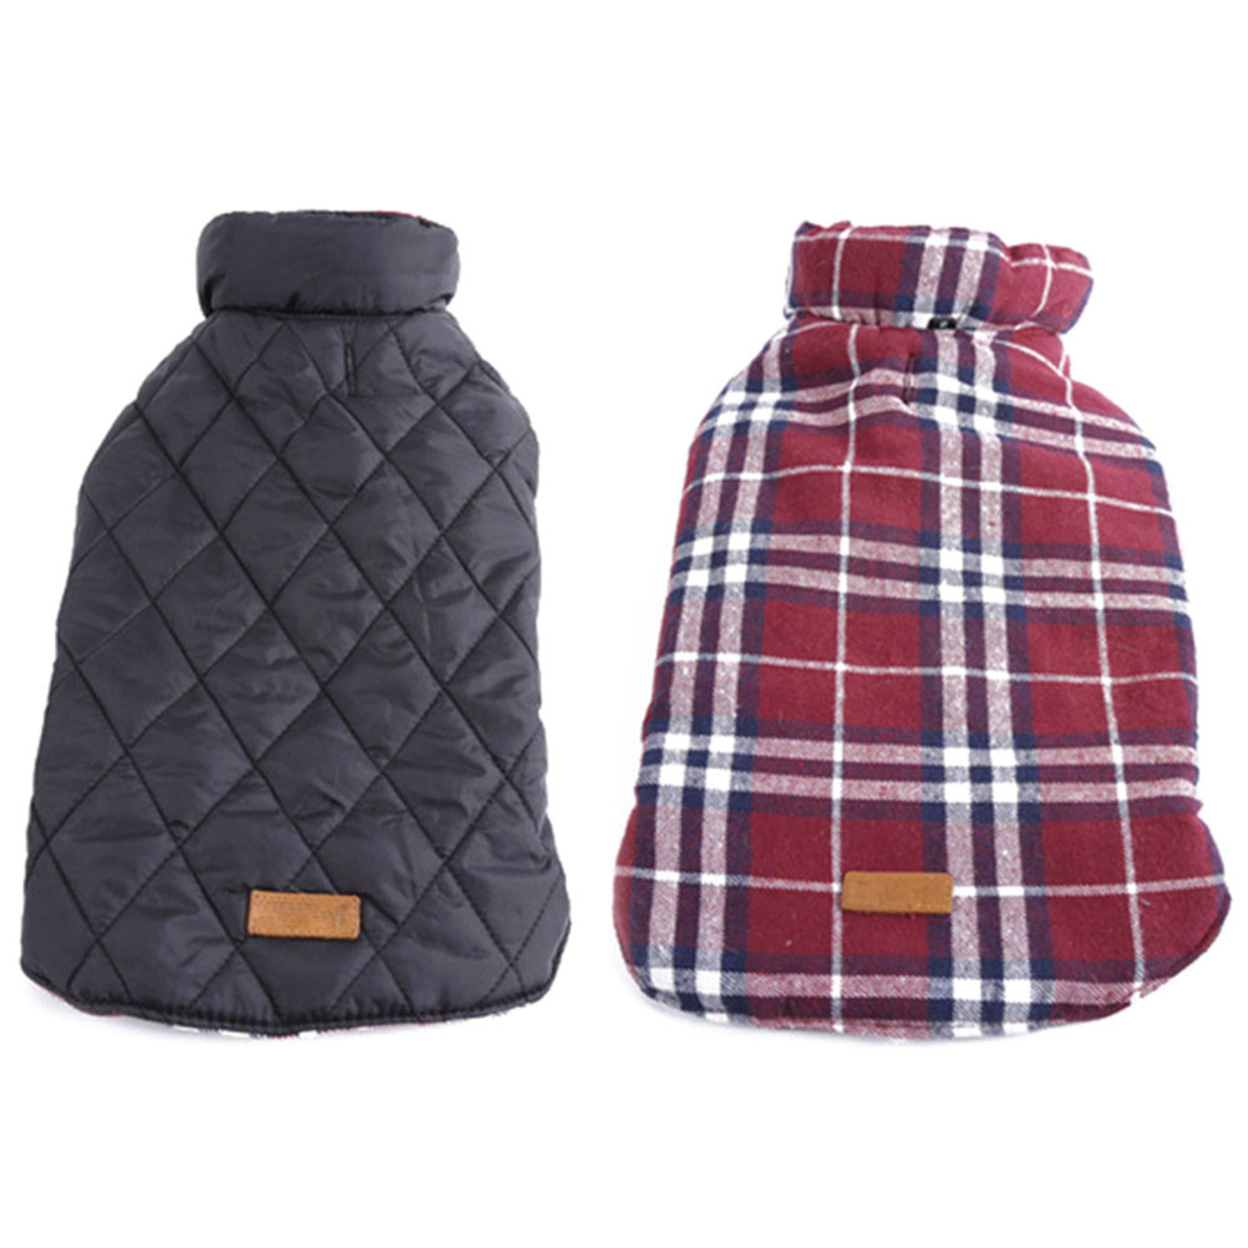 Dog Jacket Winter Christmas New Year new clothes - l 59c4be362a00e459651cf3fc